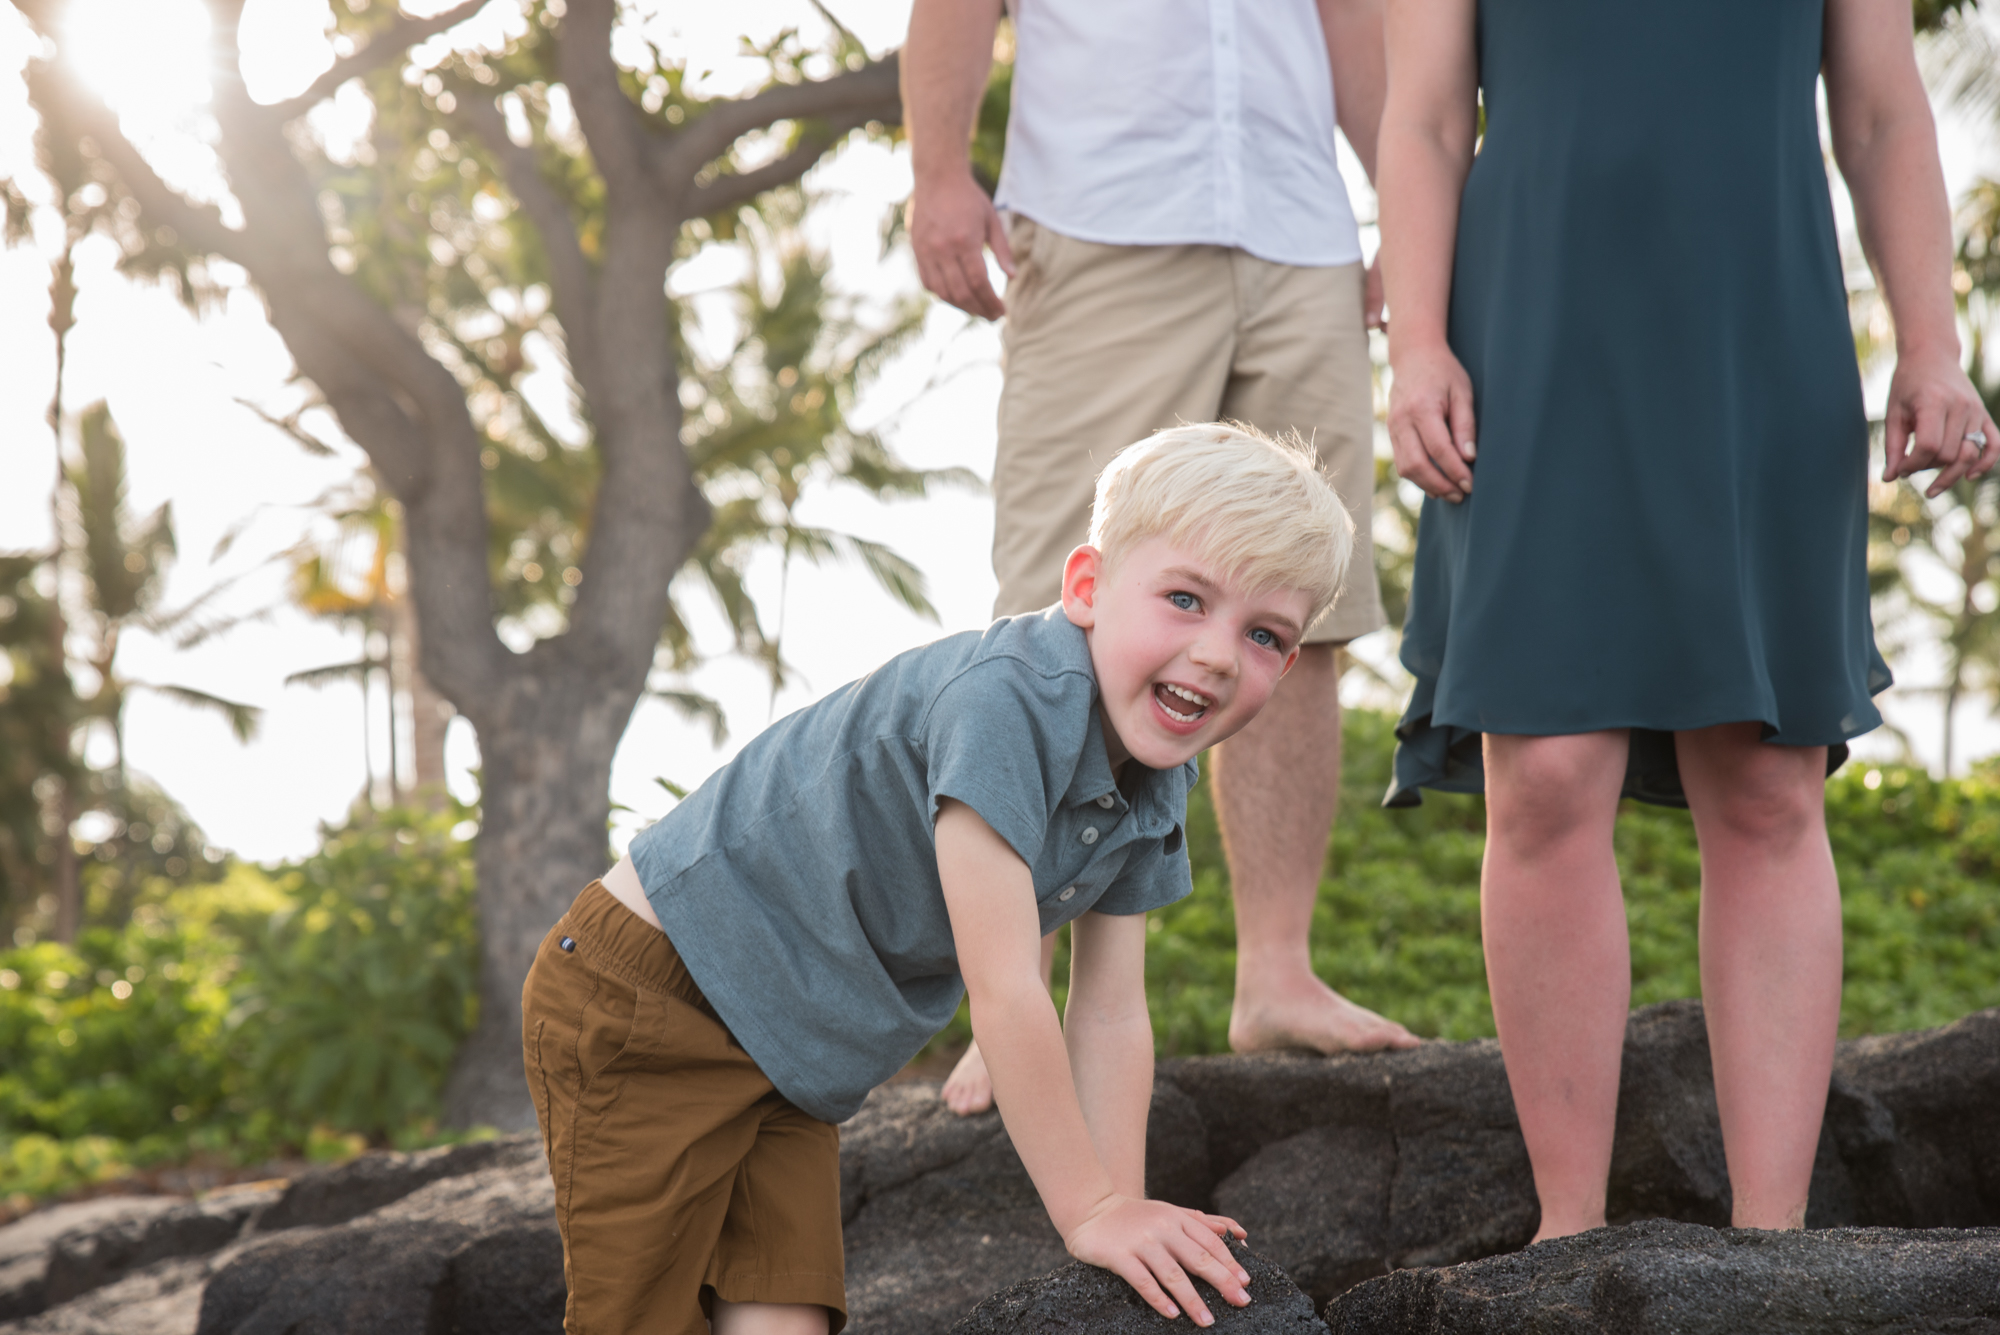 kona-fun-childrens-photographer-01